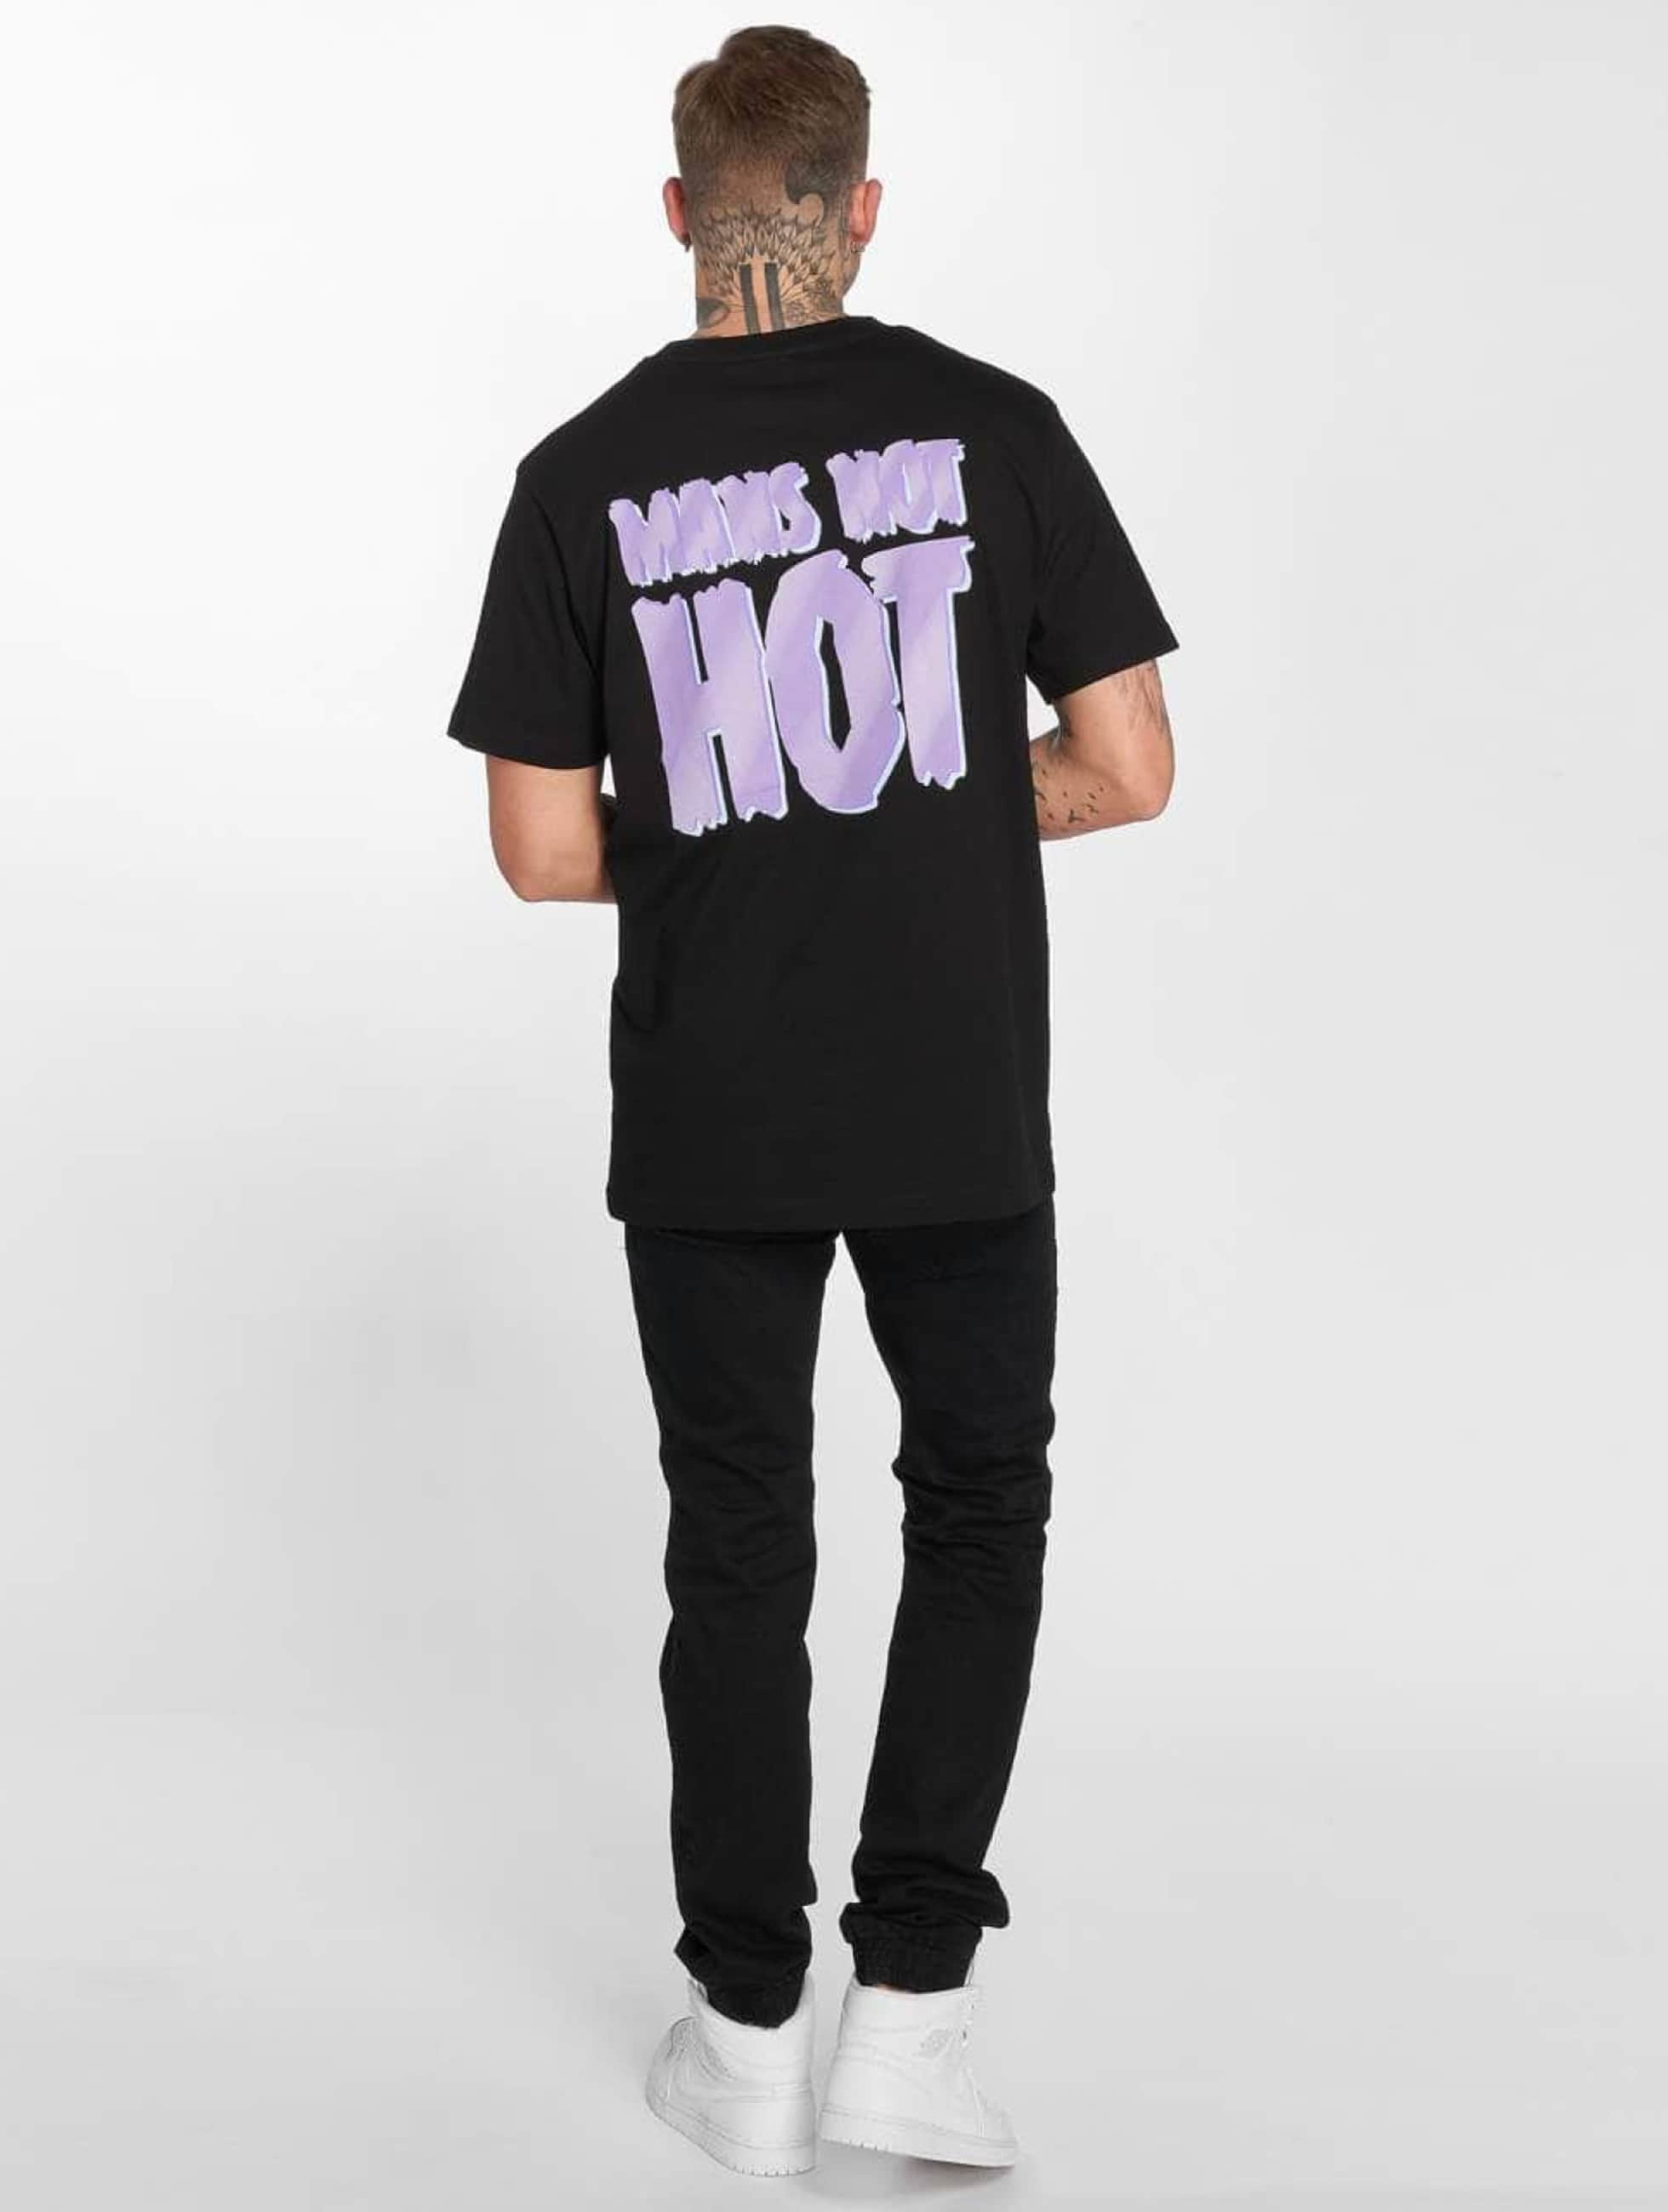 Mister Tee T-Shirt Mans Not Hot noir